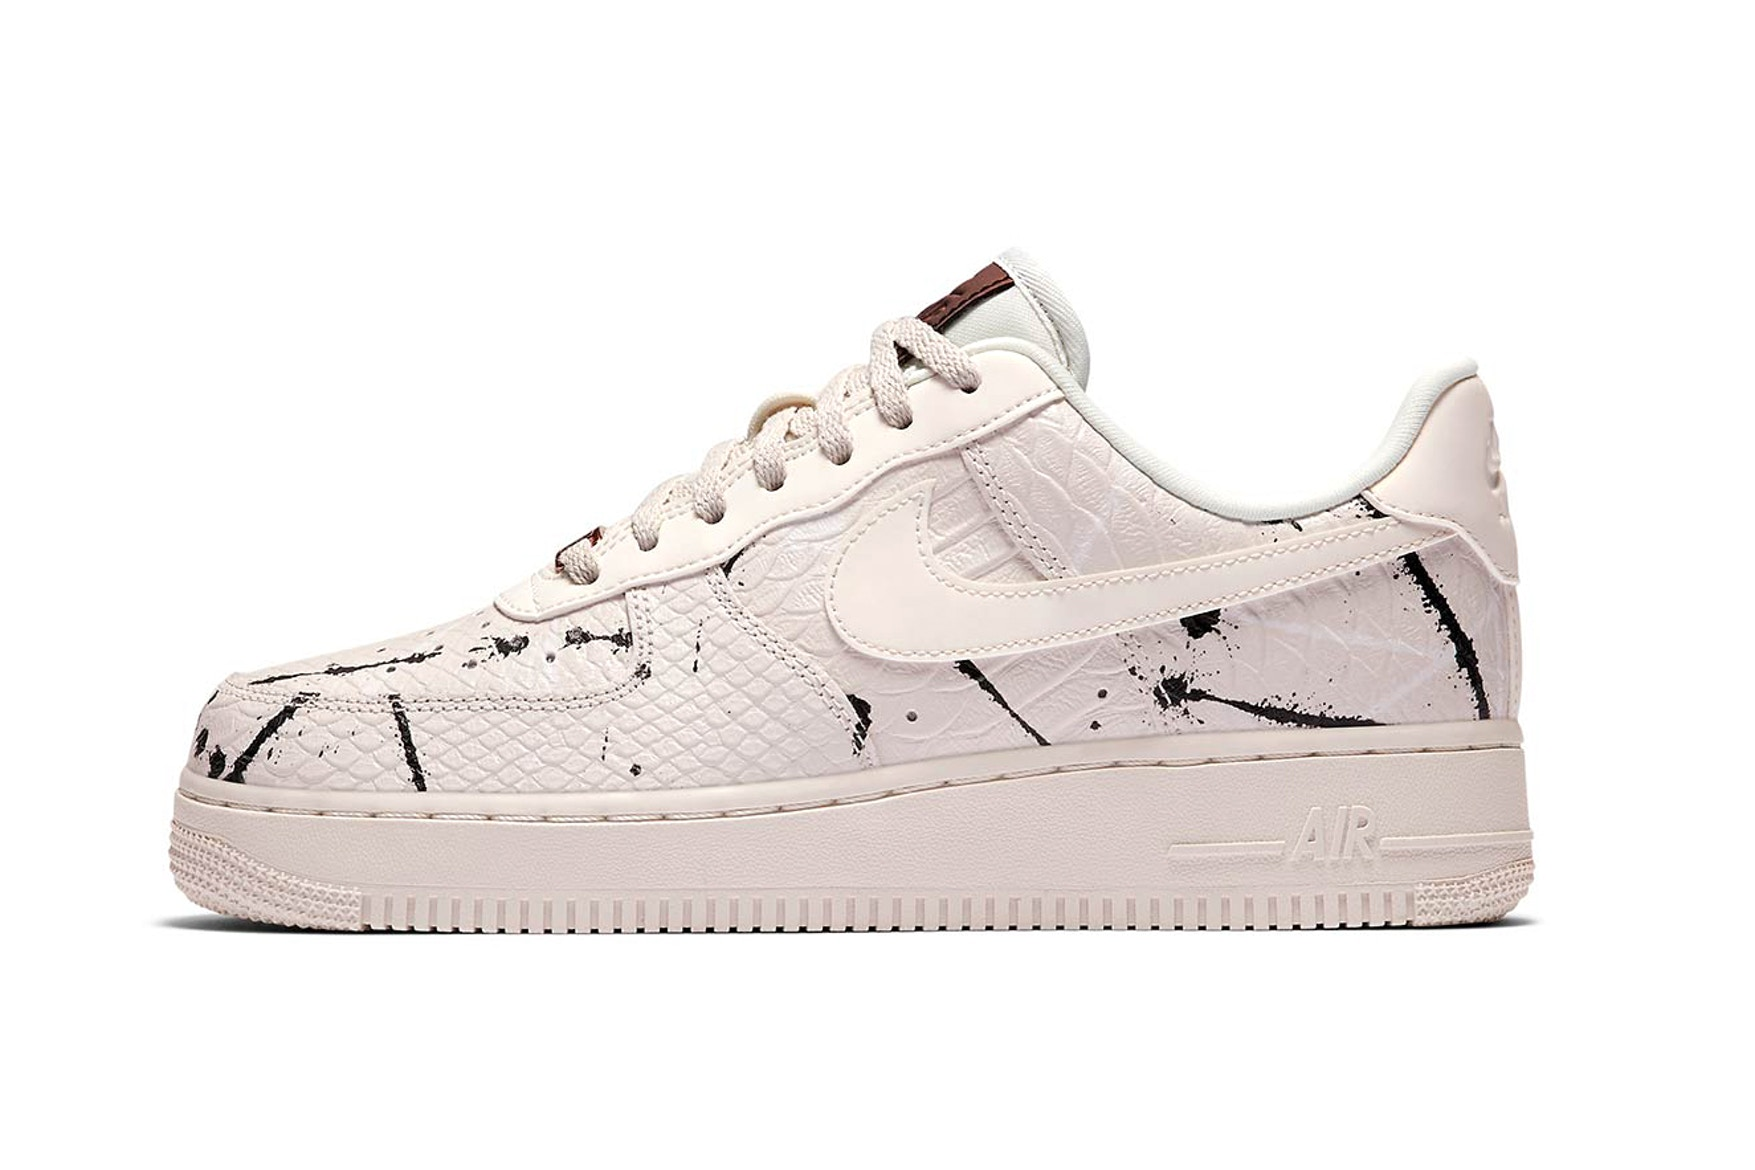 nike-air-force-1-low-phantom-snakeskin-release-1